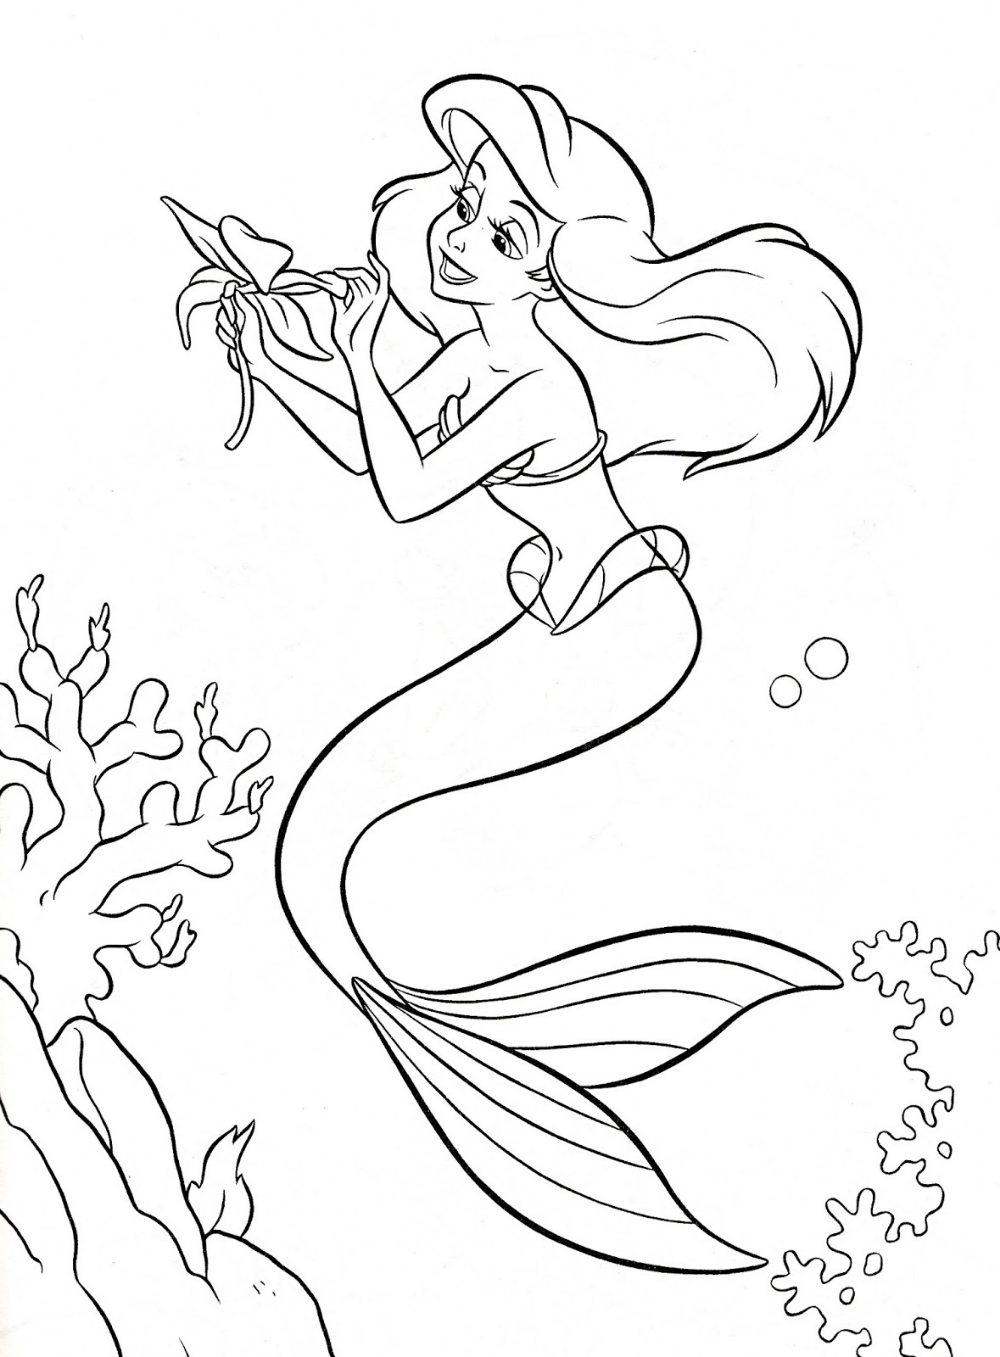 ariel coloring pages the little mermaid coloring pages to download and print ariel coloring pages